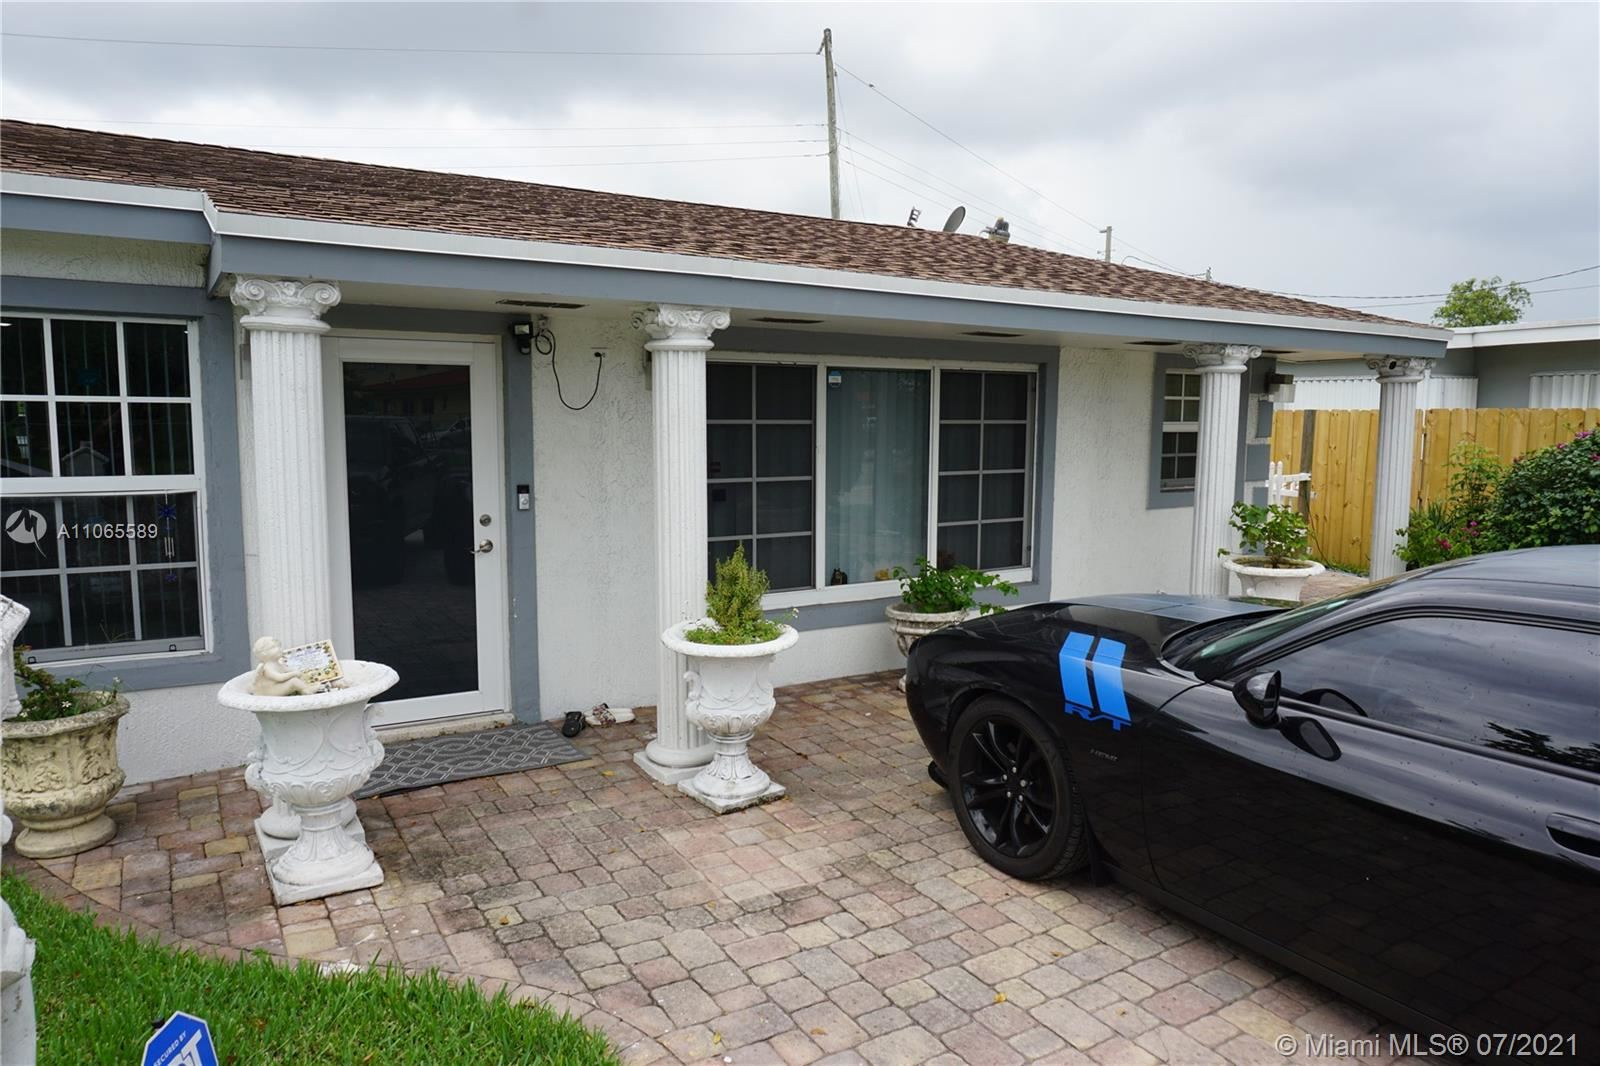 120 S 56th Ave, Hollywood, FL 33023 - #: A11065589